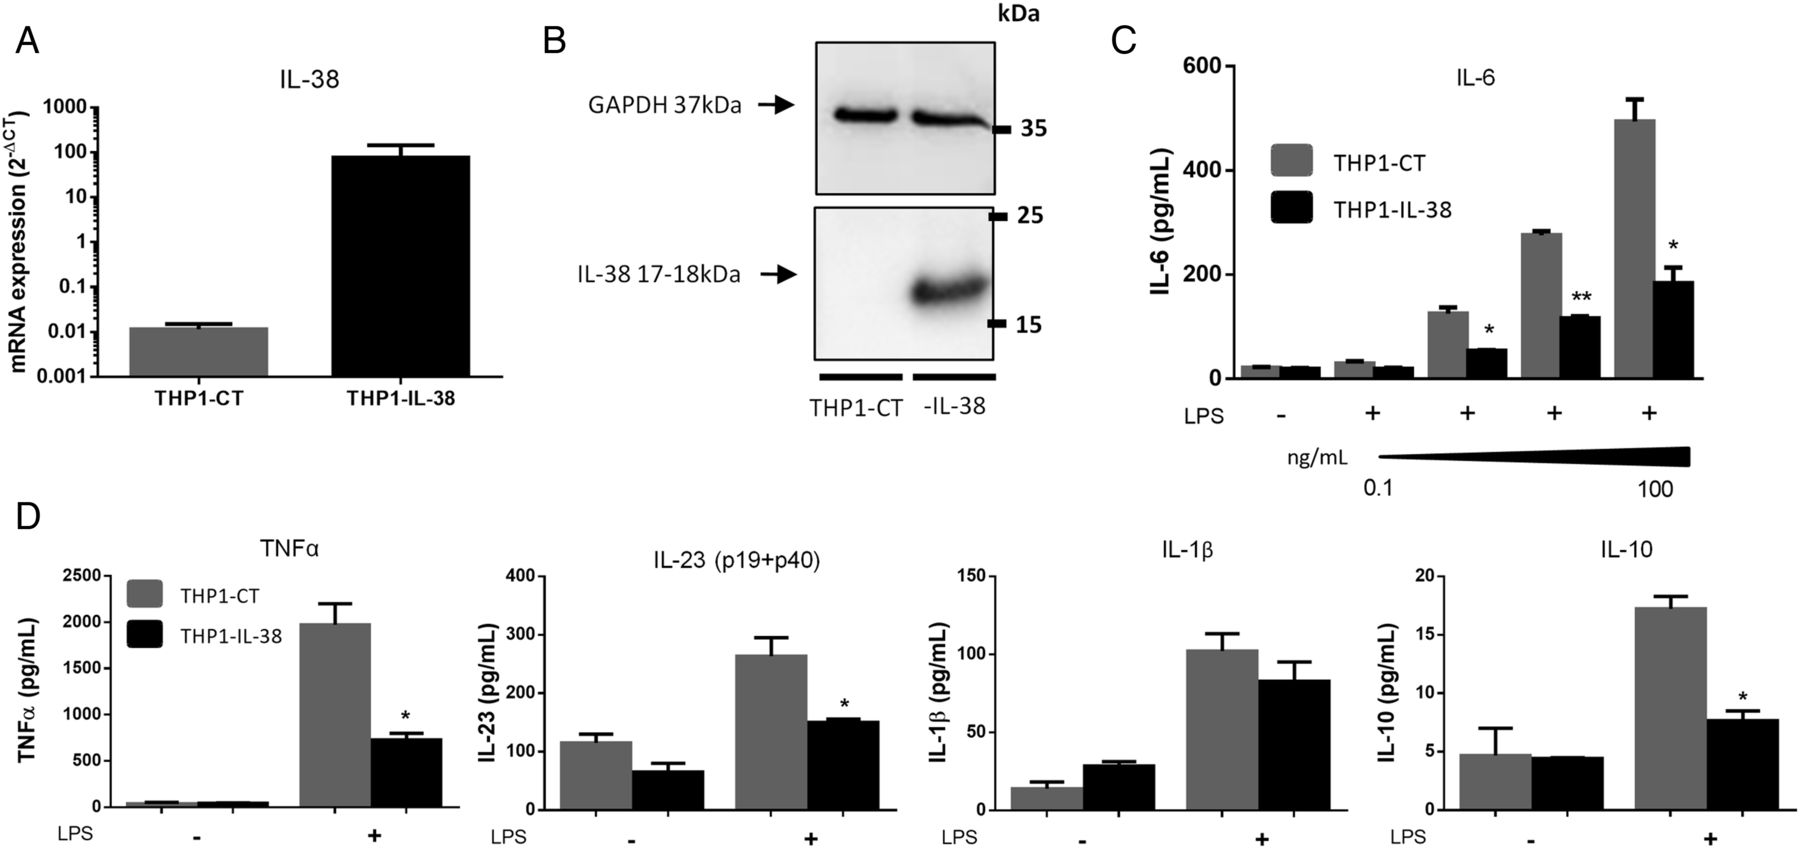 IL-38 overexpression induces anti-inflammatory effects in